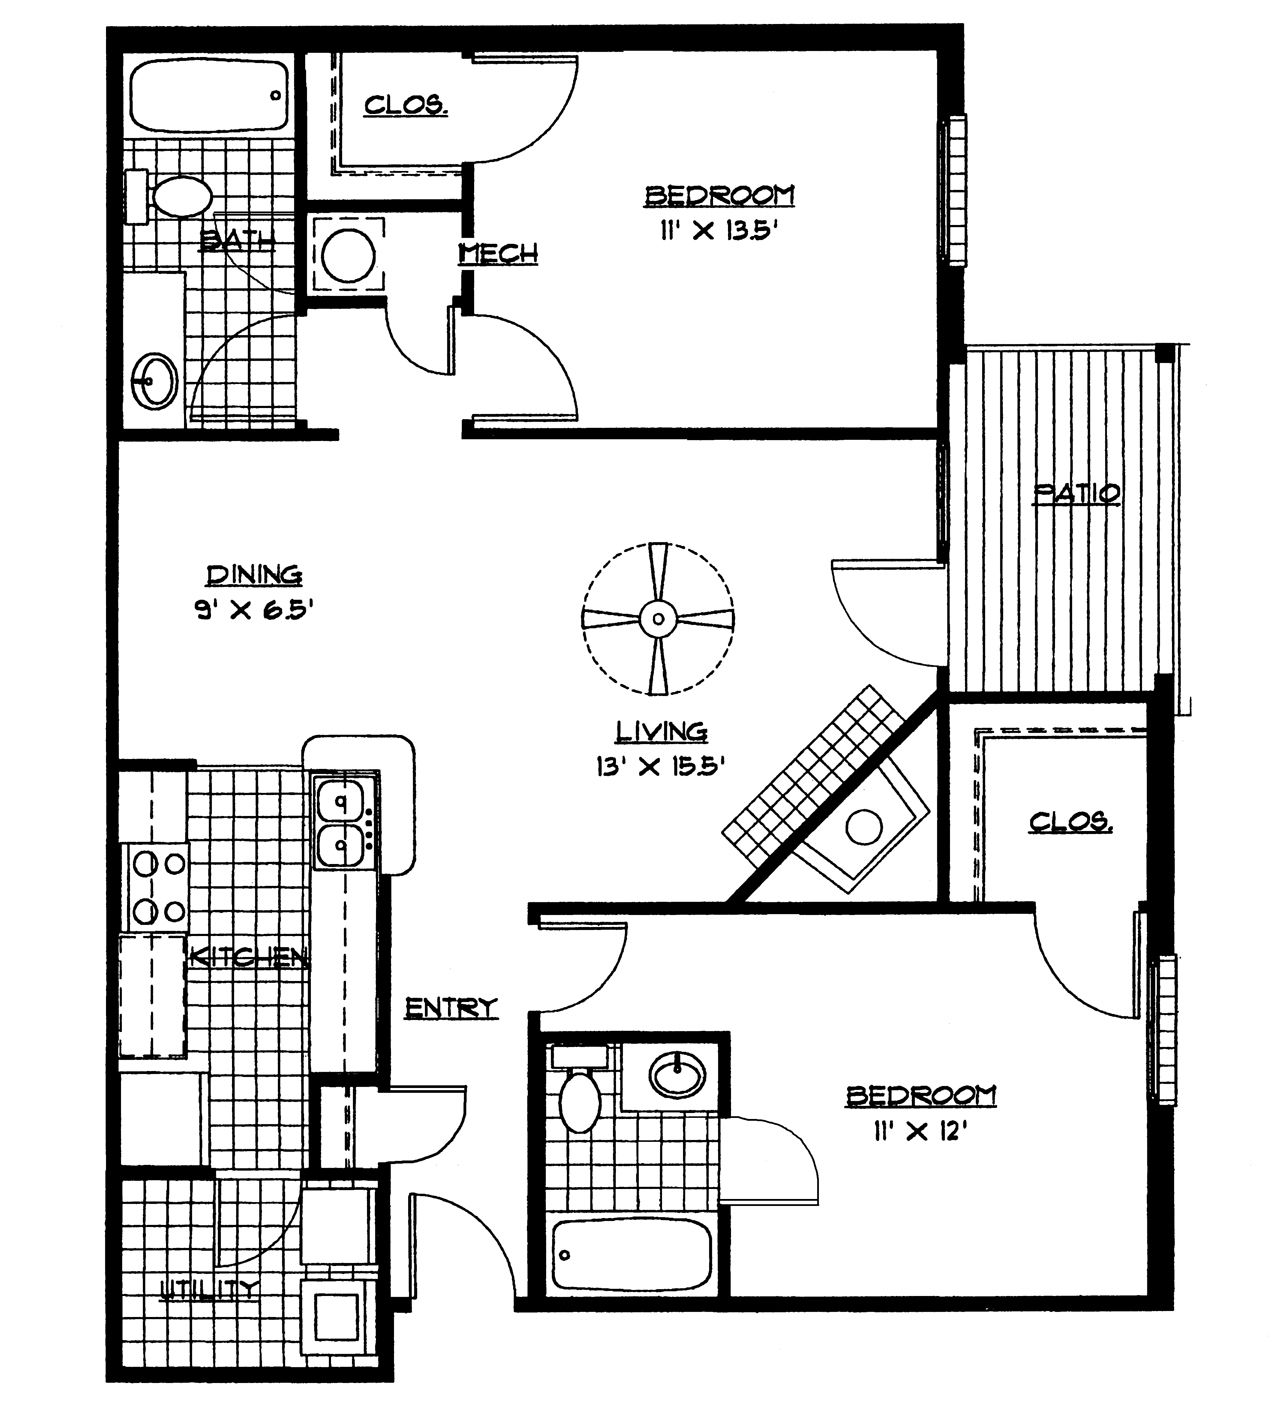 Building Plans 2 Bedroom 2 Bedroom Apartment Building Floor Plans